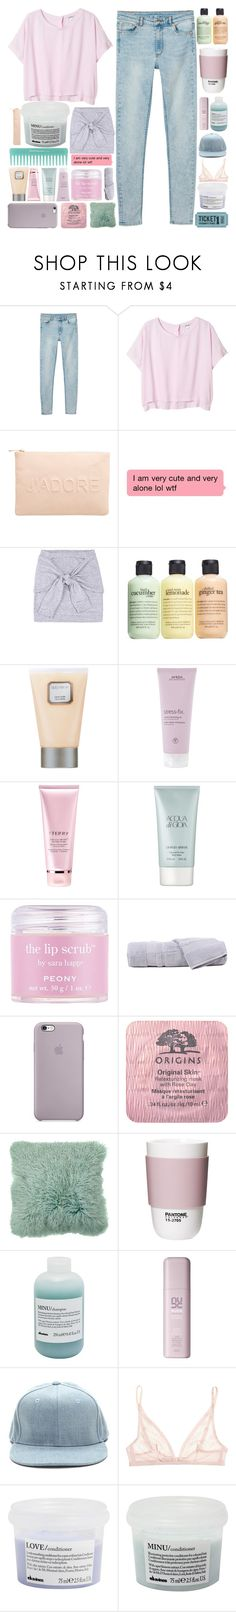 """♡ i wish i was strong enough"" by s-erene ❤ liked on Polyvore featuring Monki, Miss Selfridge, philosophy, Laura Mercier, Aveda, By Terry, Giorgio Armani, Sara Happ, Hamam and Origins"